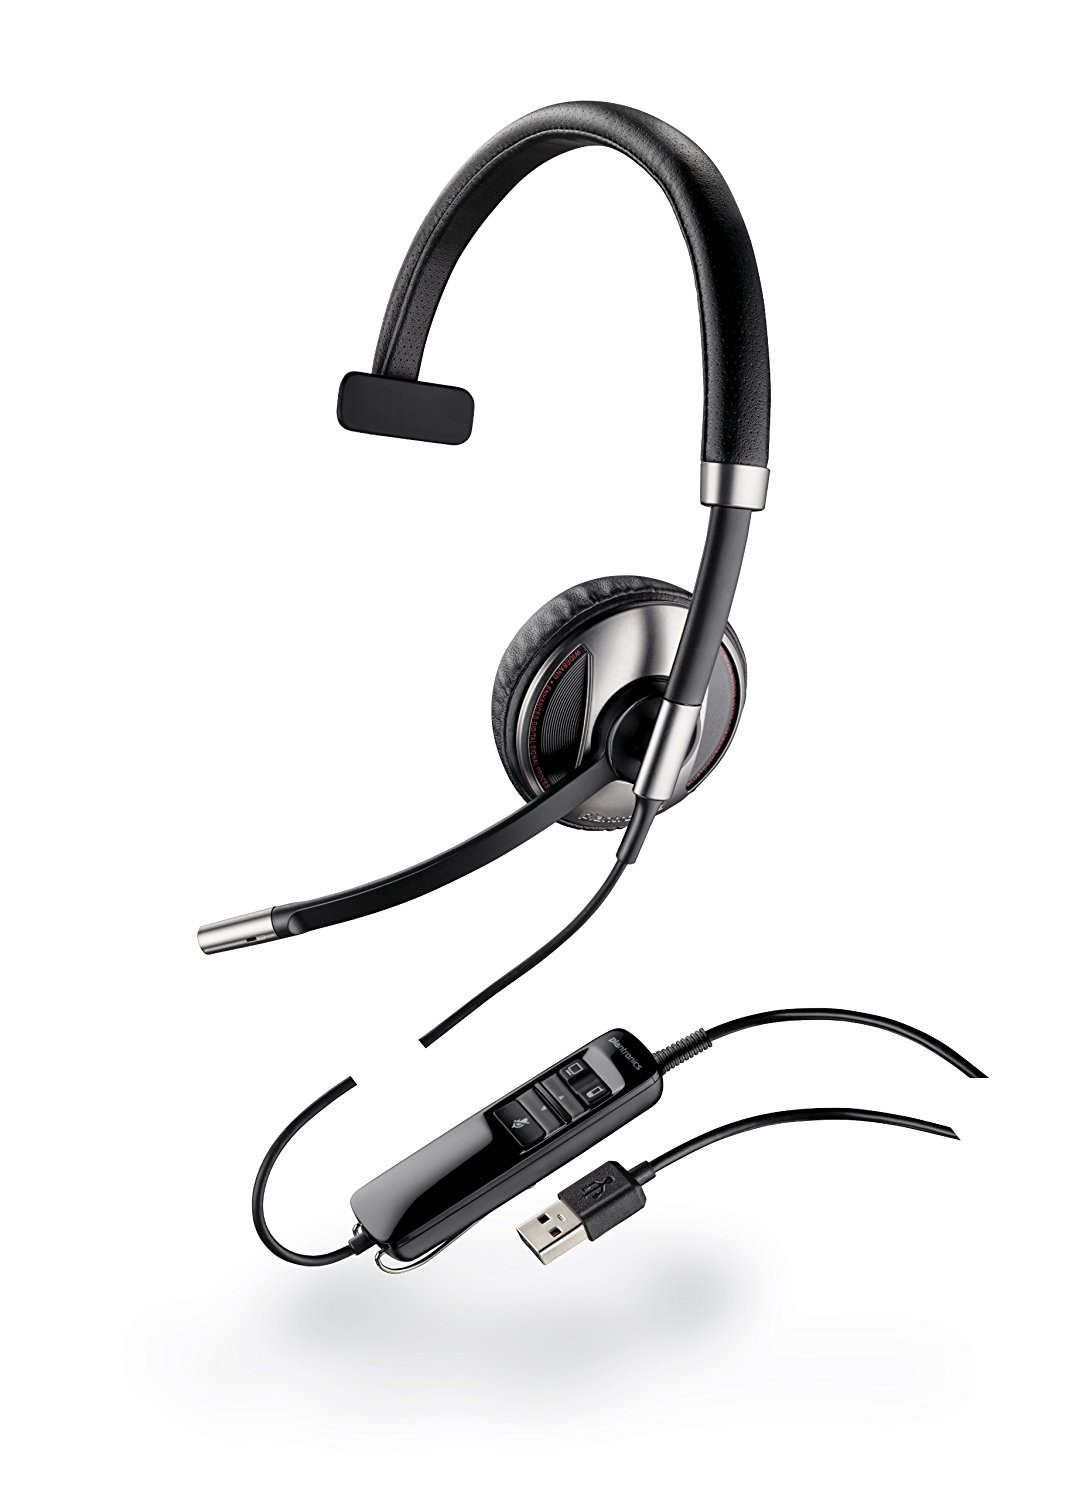 plantronics blackwire c710 m headset 87505 01 from pmc telecom. Black Bedroom Furniture Sets. Home Design Ideas